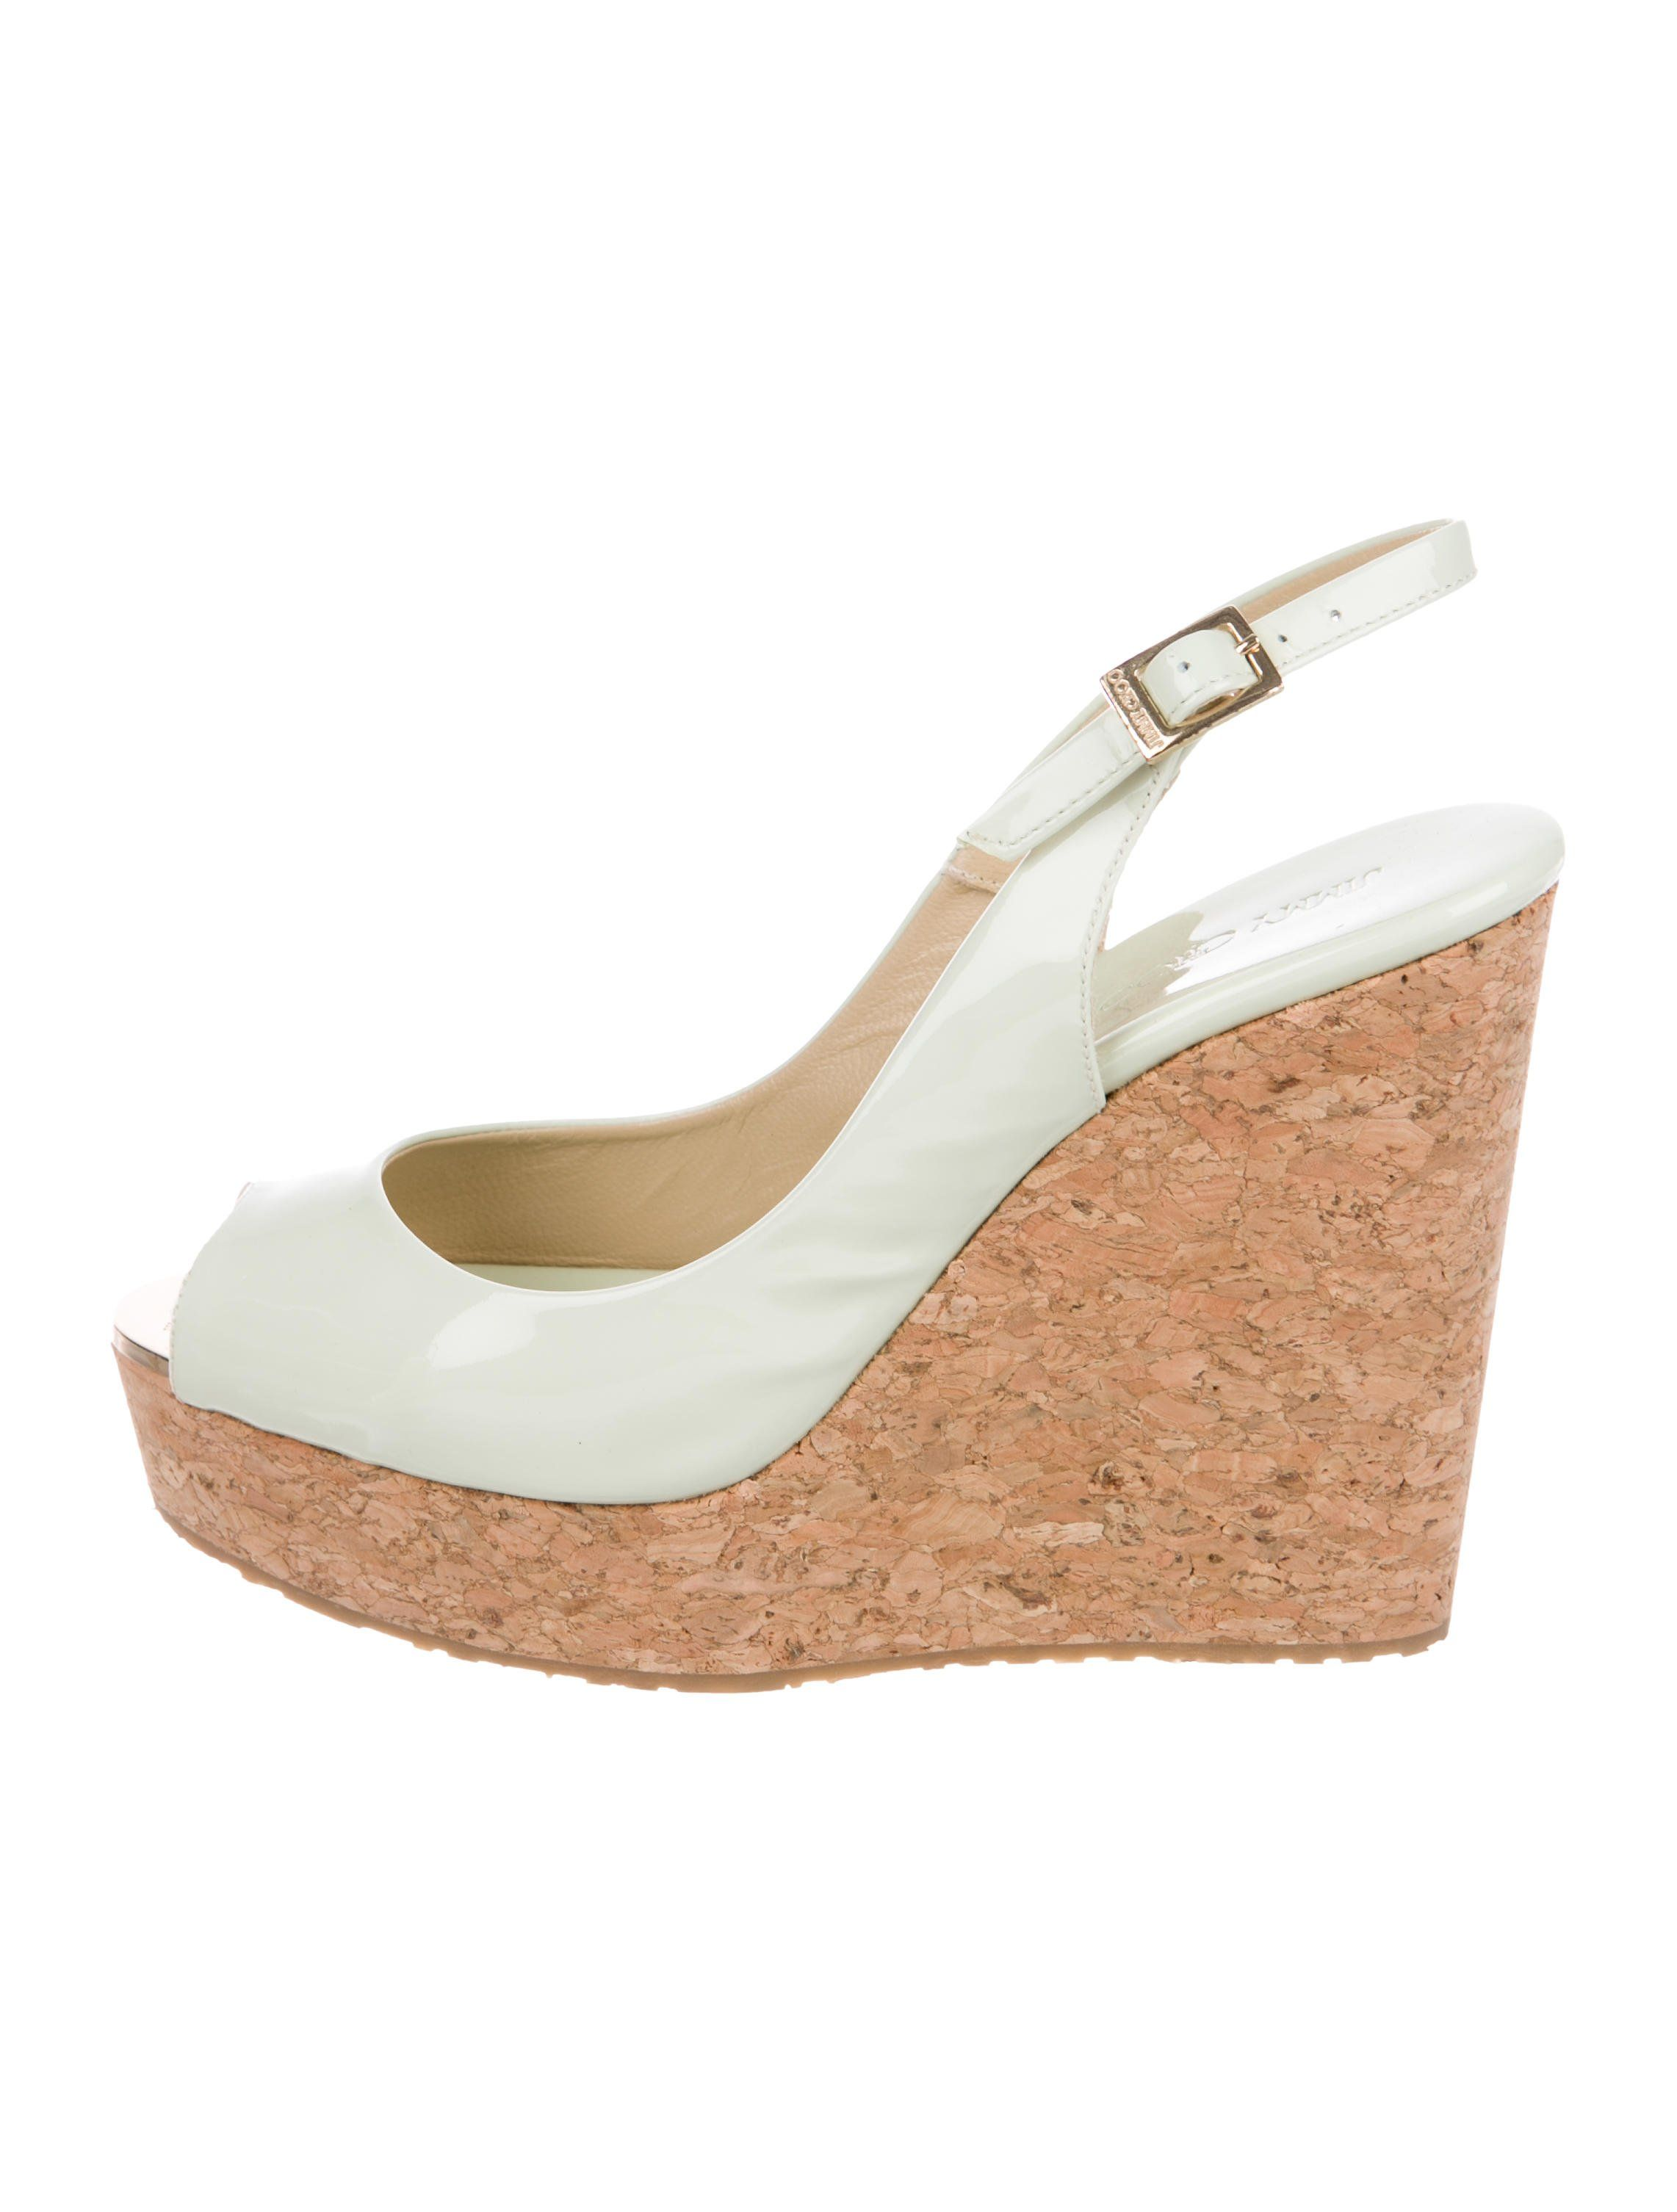 6721b158d9 Mint patent leather Jimmy Choo platform wedges with peep-toe, cork covered  wedges and slingback buckle closure. Includes box and dust bag.